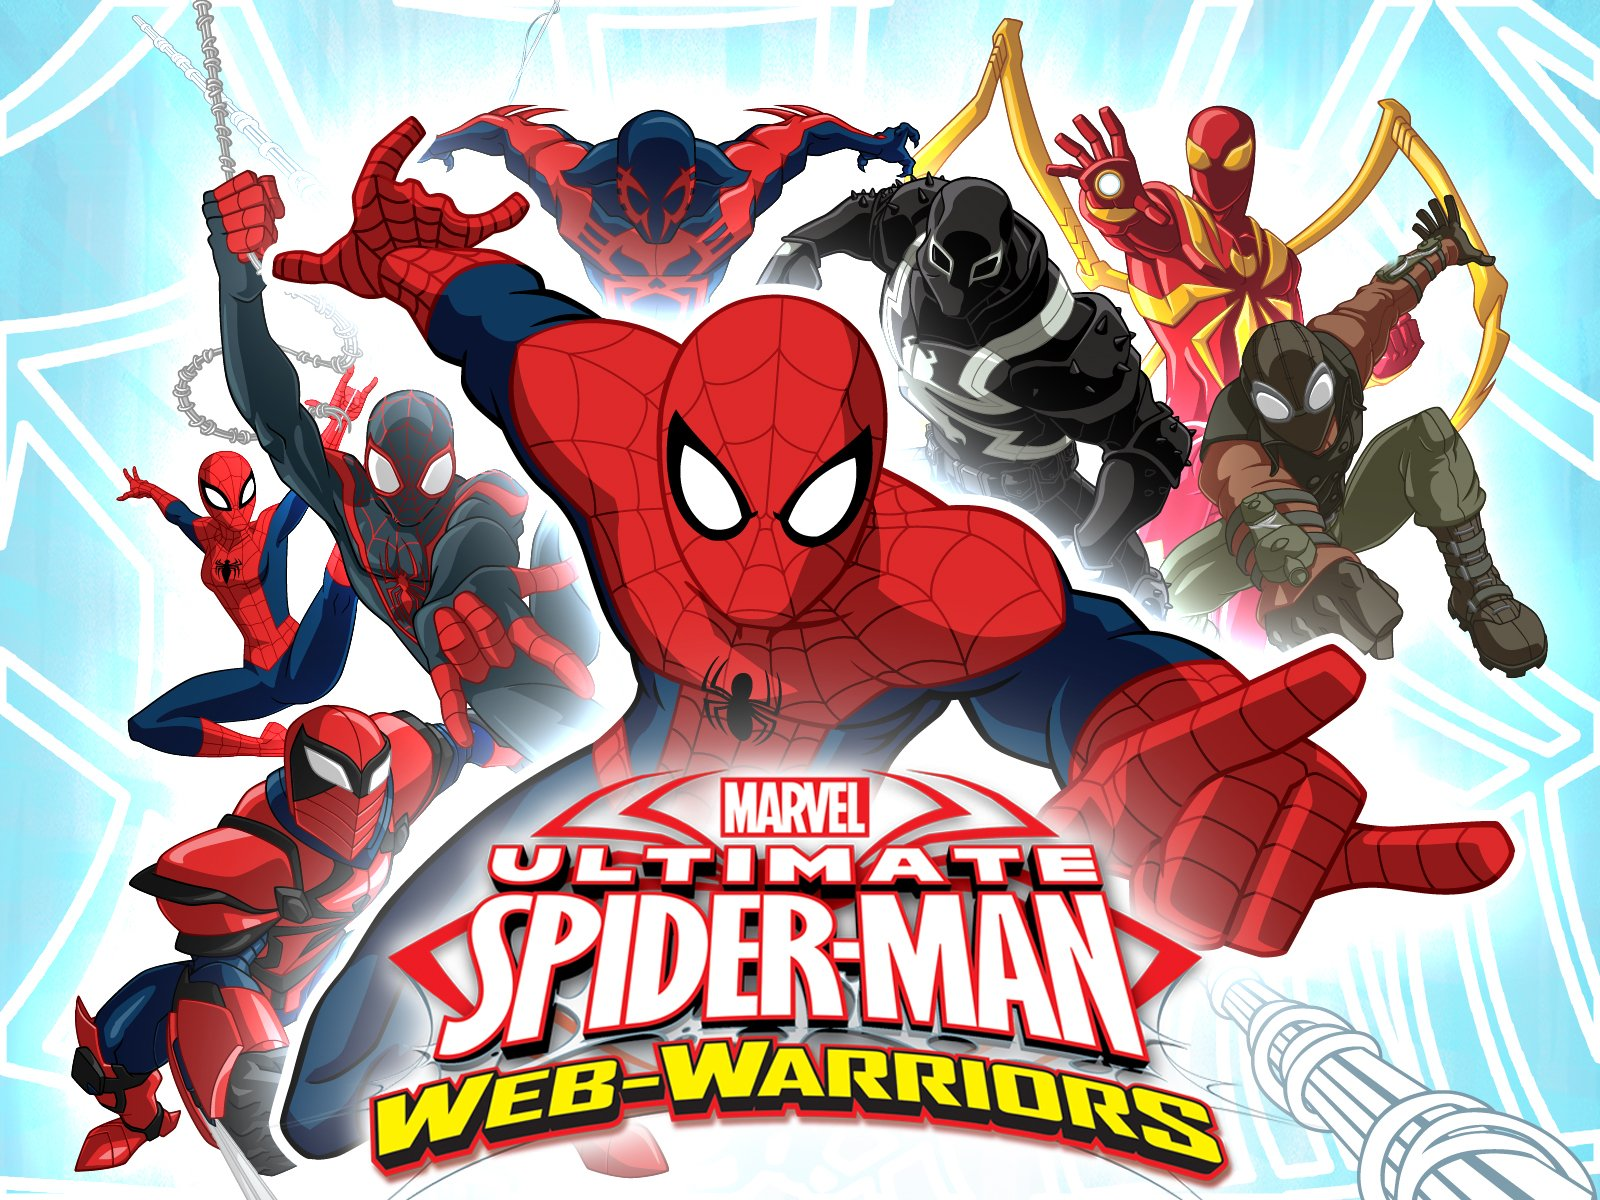 Amazon.com: Marvels Ultimate Spider-Man: Web Warriors ...